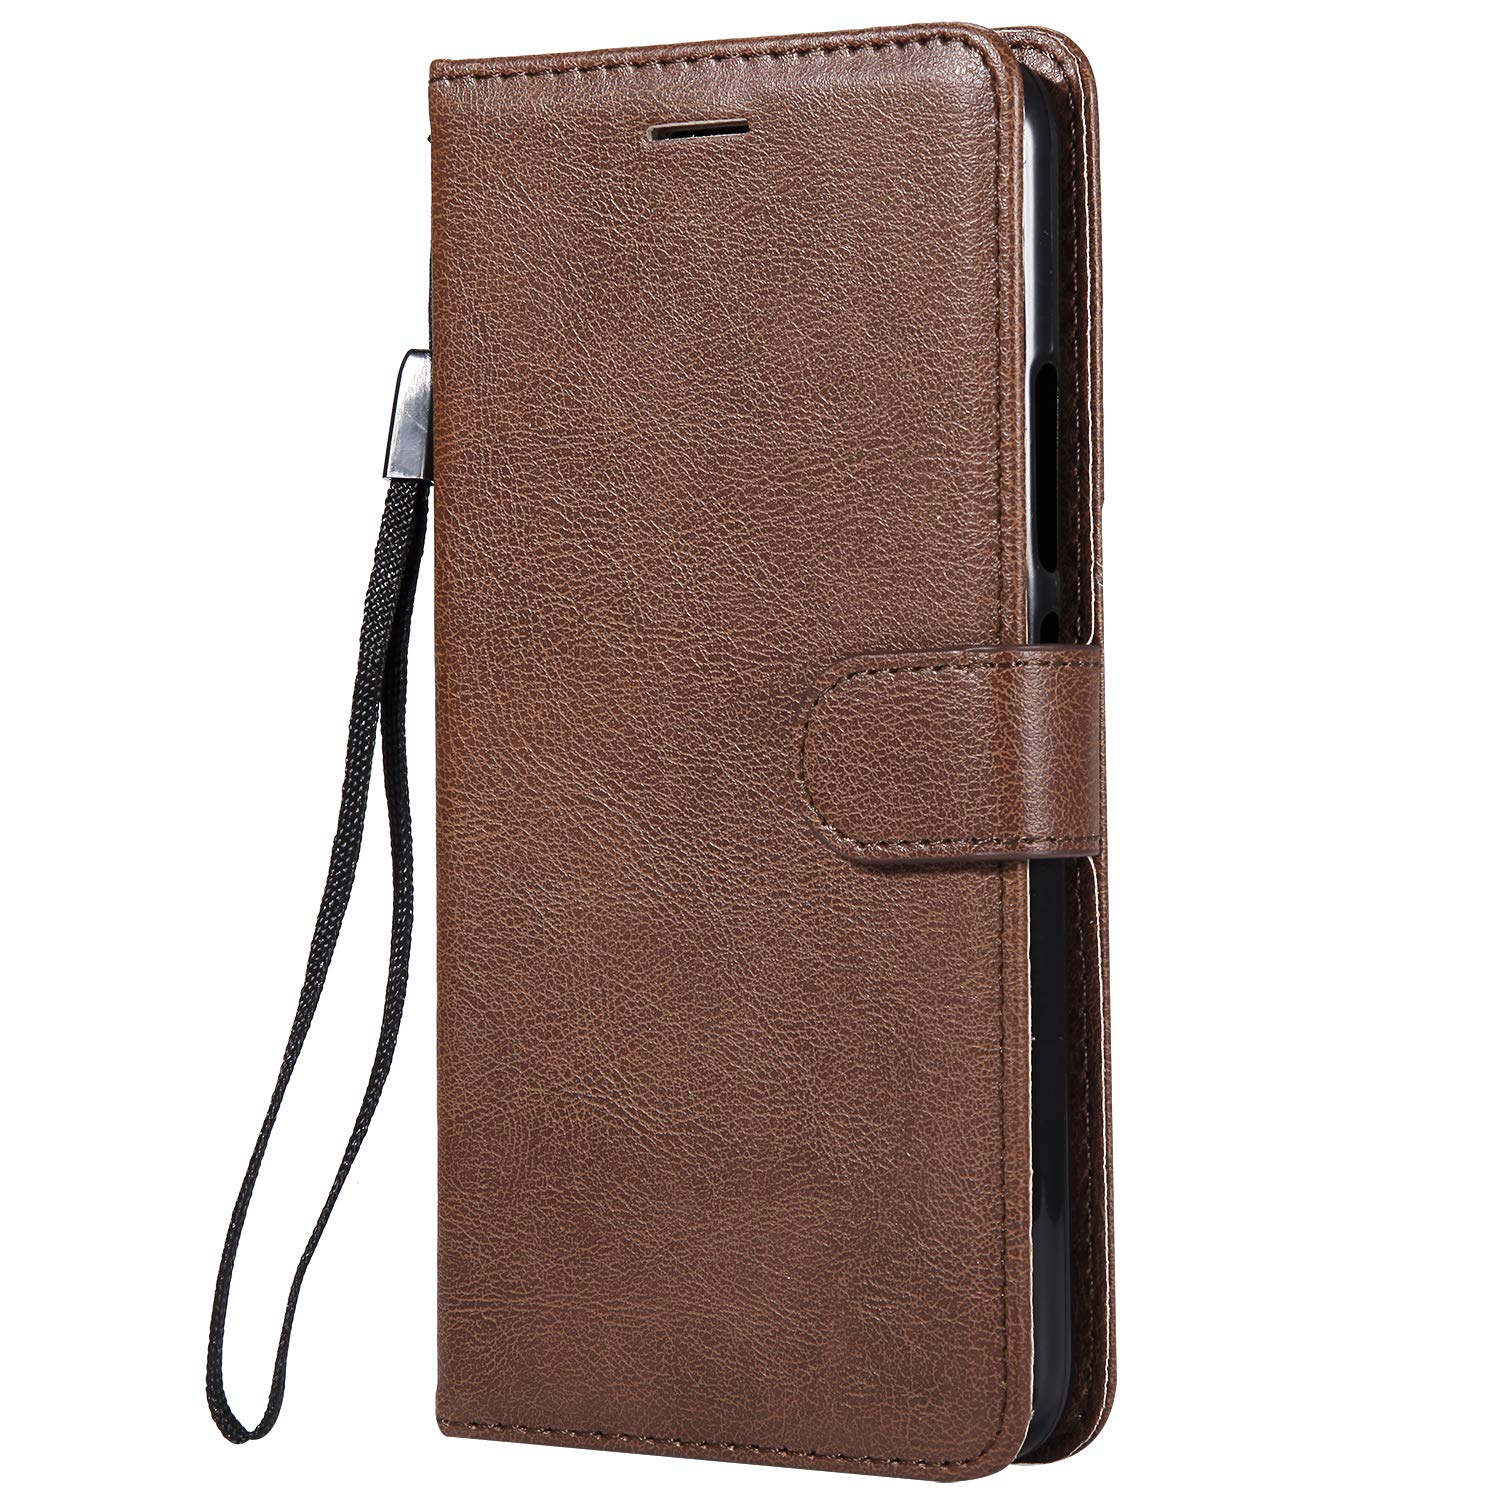 Moto E4 Plus Case, AIIYG DS Classic Pure Color [Kickstand Feature] Flip Folio Leather Wallet Case with ID and Credit Card Pockets for Moto E4 Plus Brown